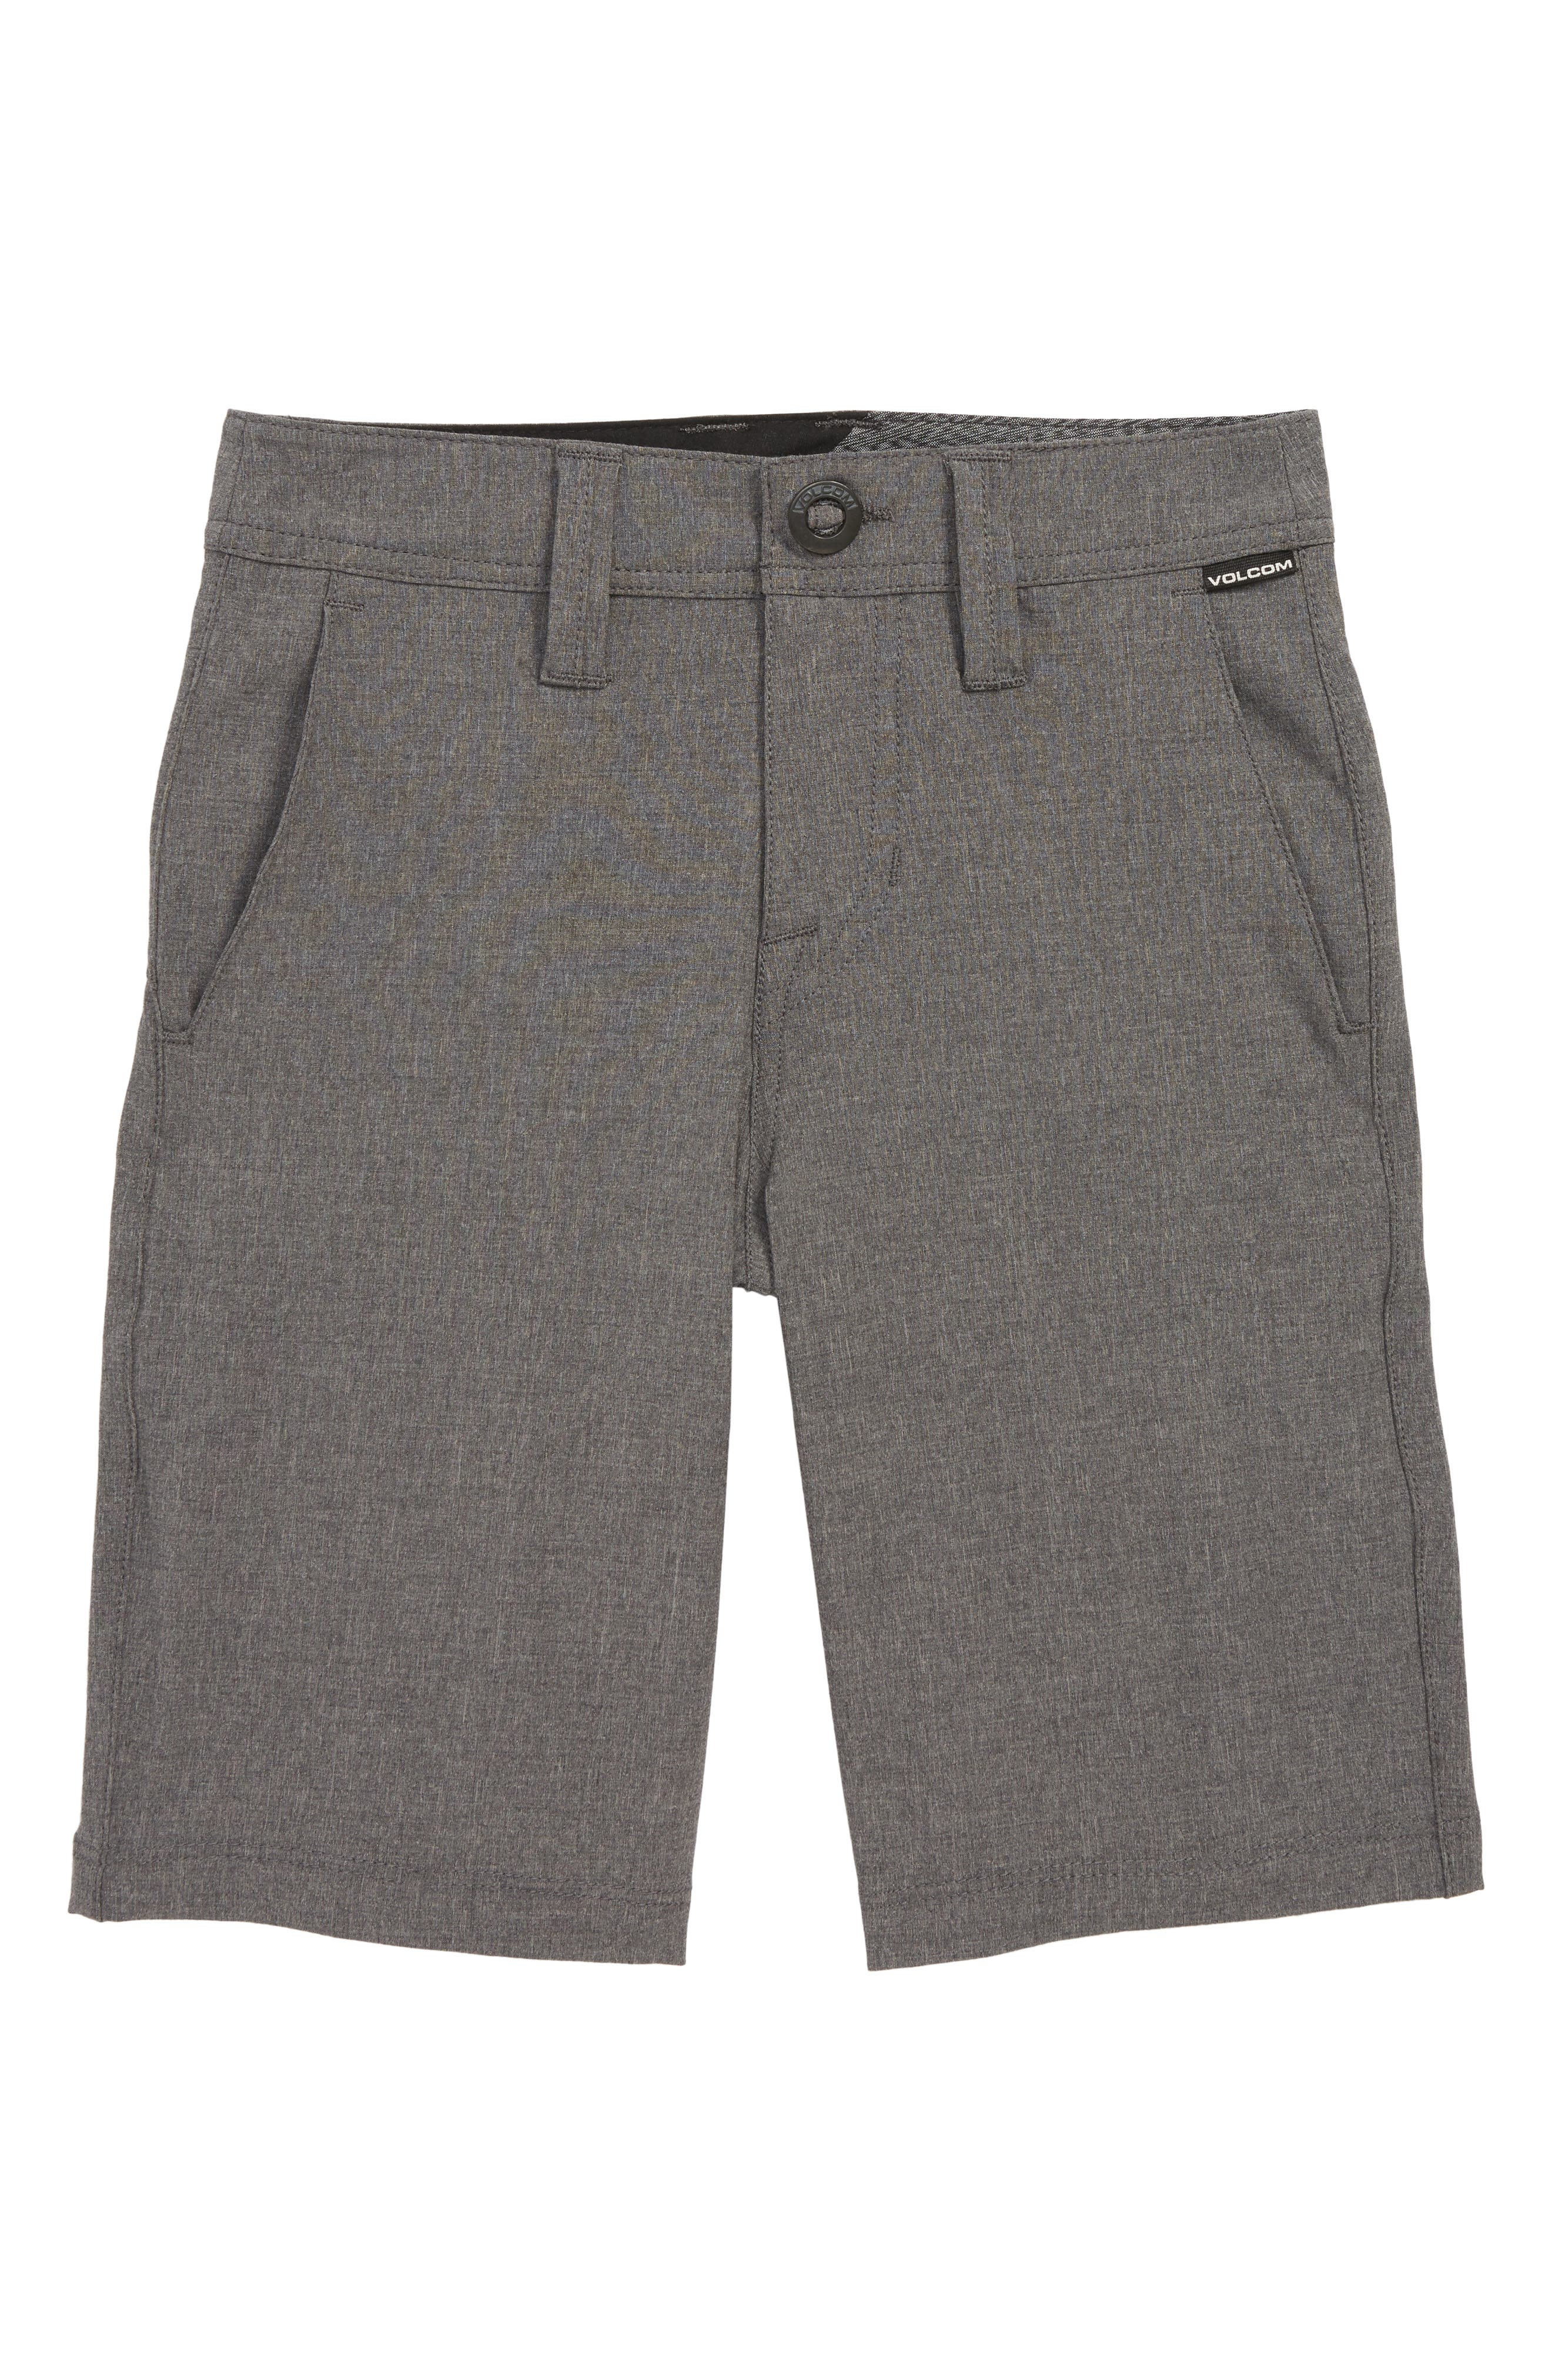 Frickin Surf N' Turf Static Hybrid Board Shorts,                         Main,                         color, CHARCOAL HEATHER